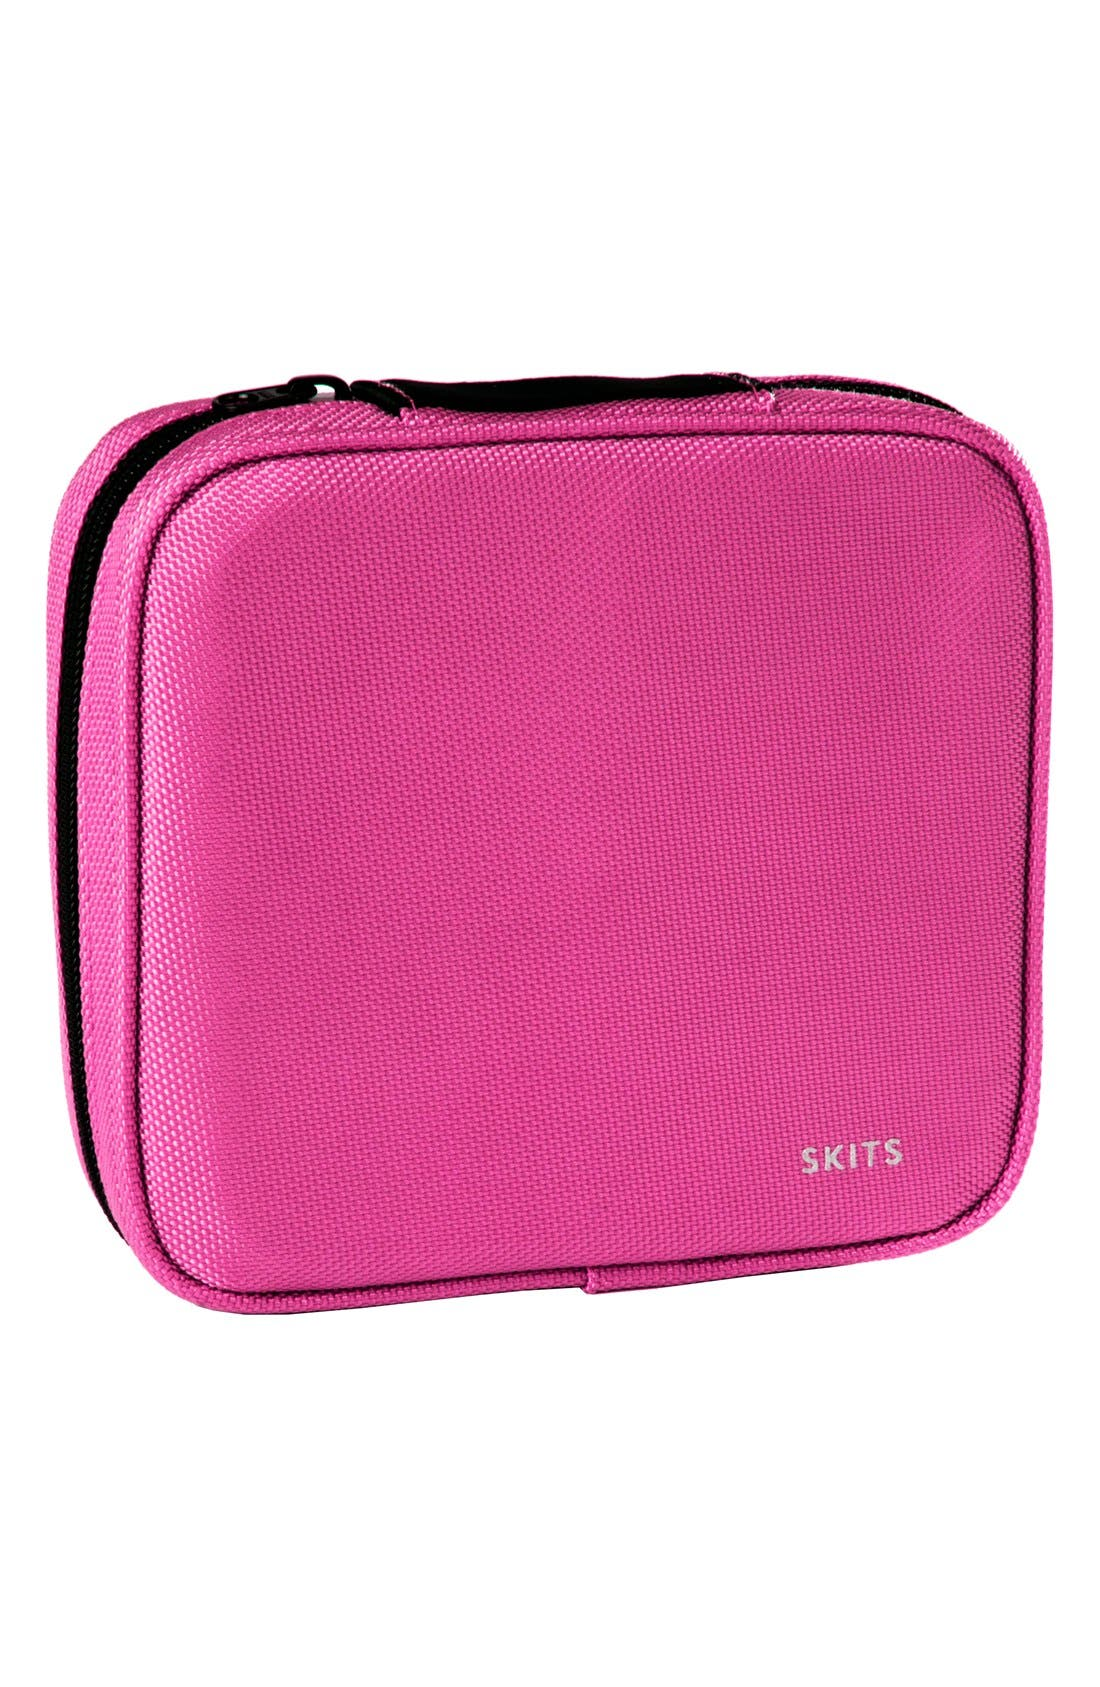 Alternate Image 1 Selected - SKITS 'Smart' Tech Accessories & Cables Case